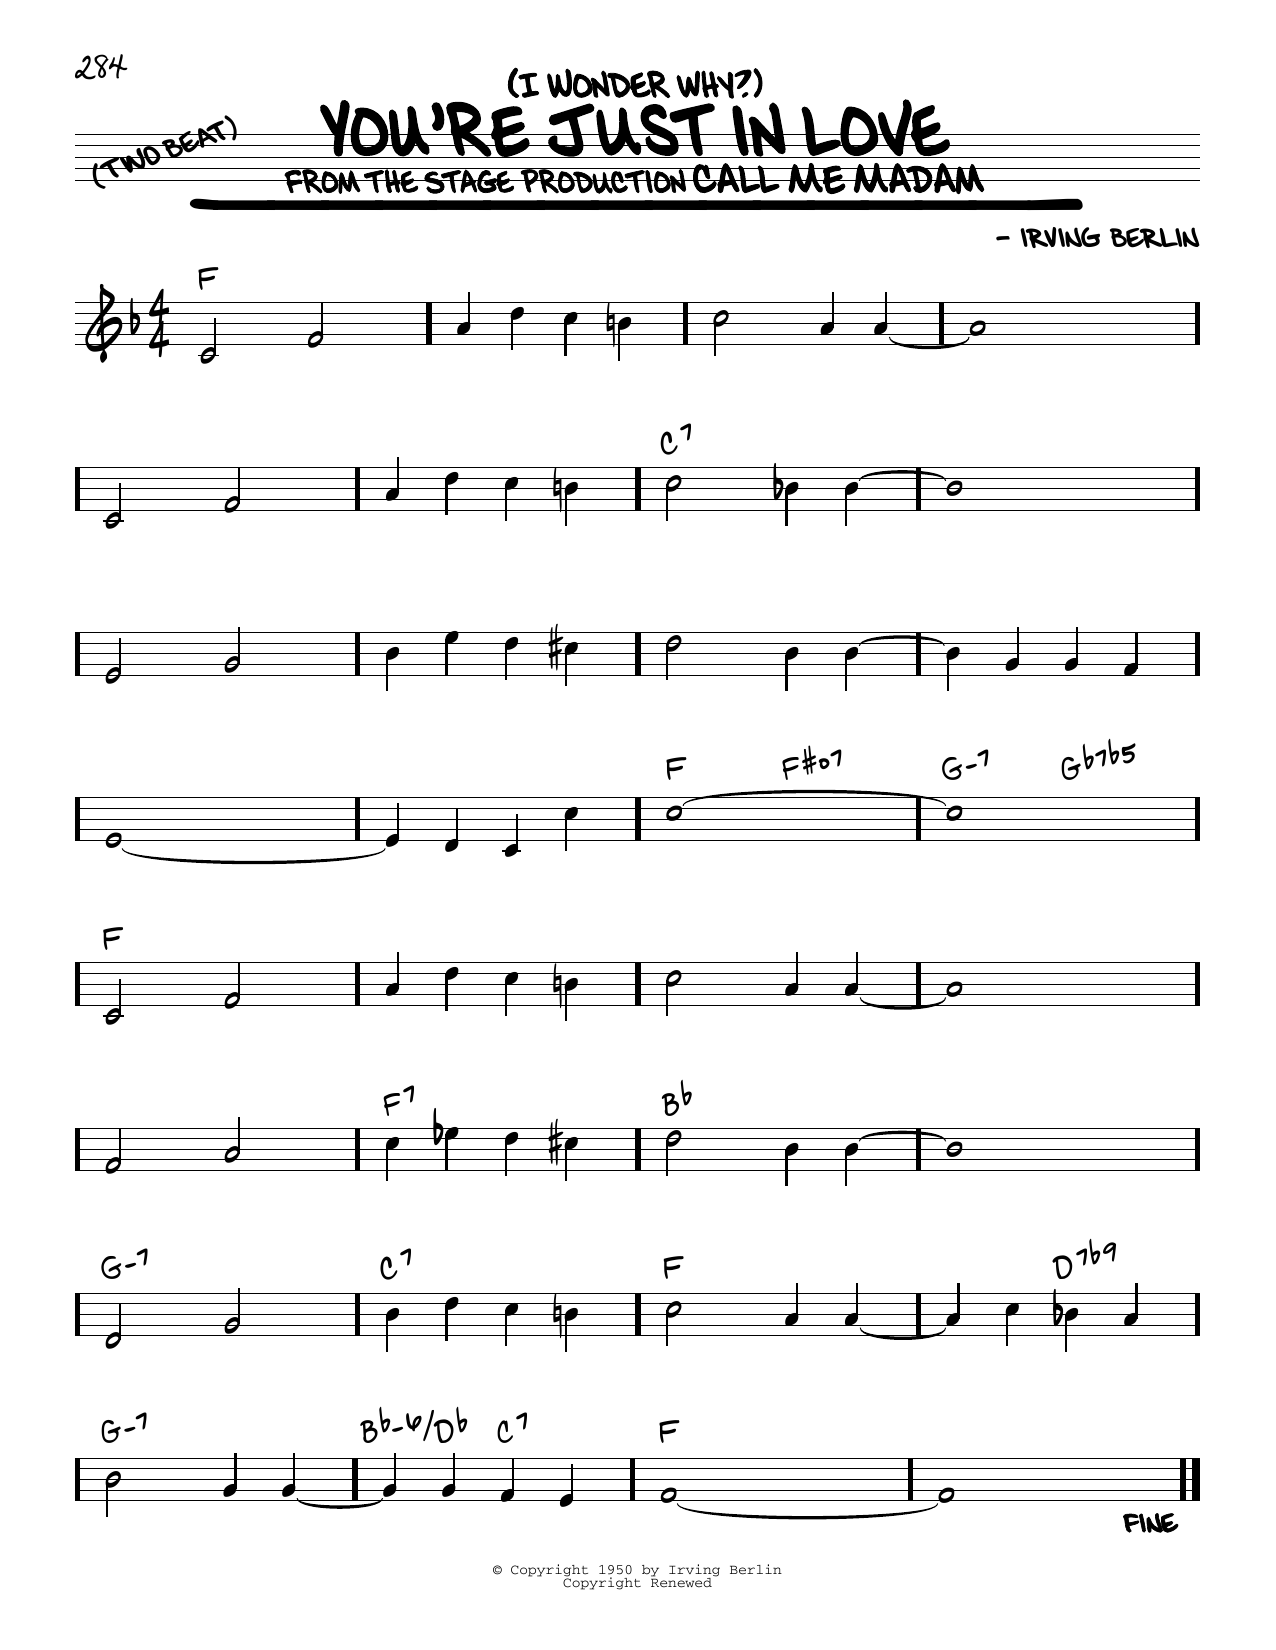 (I Wonder Why?) You're Just In Love Sheet Music